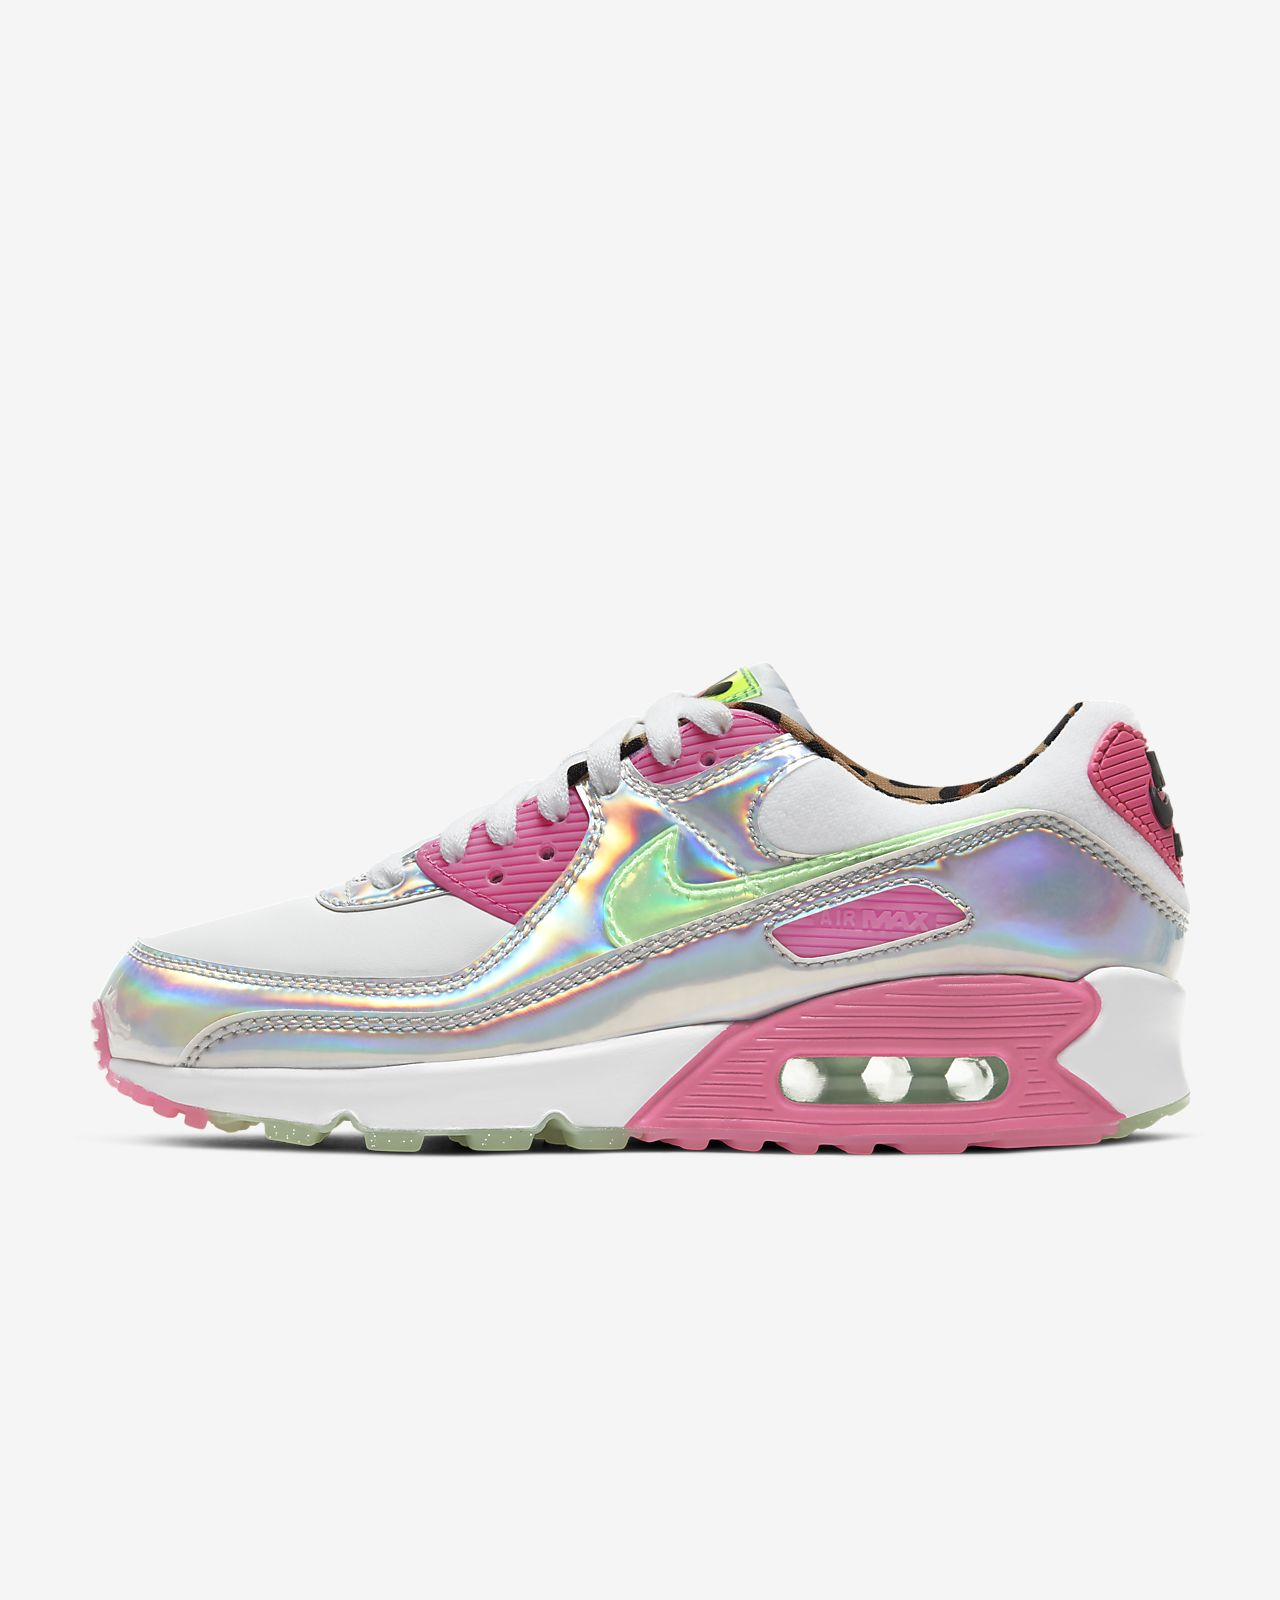 Nike Women's Air Max 90 at Footlocker | Nike schoenen